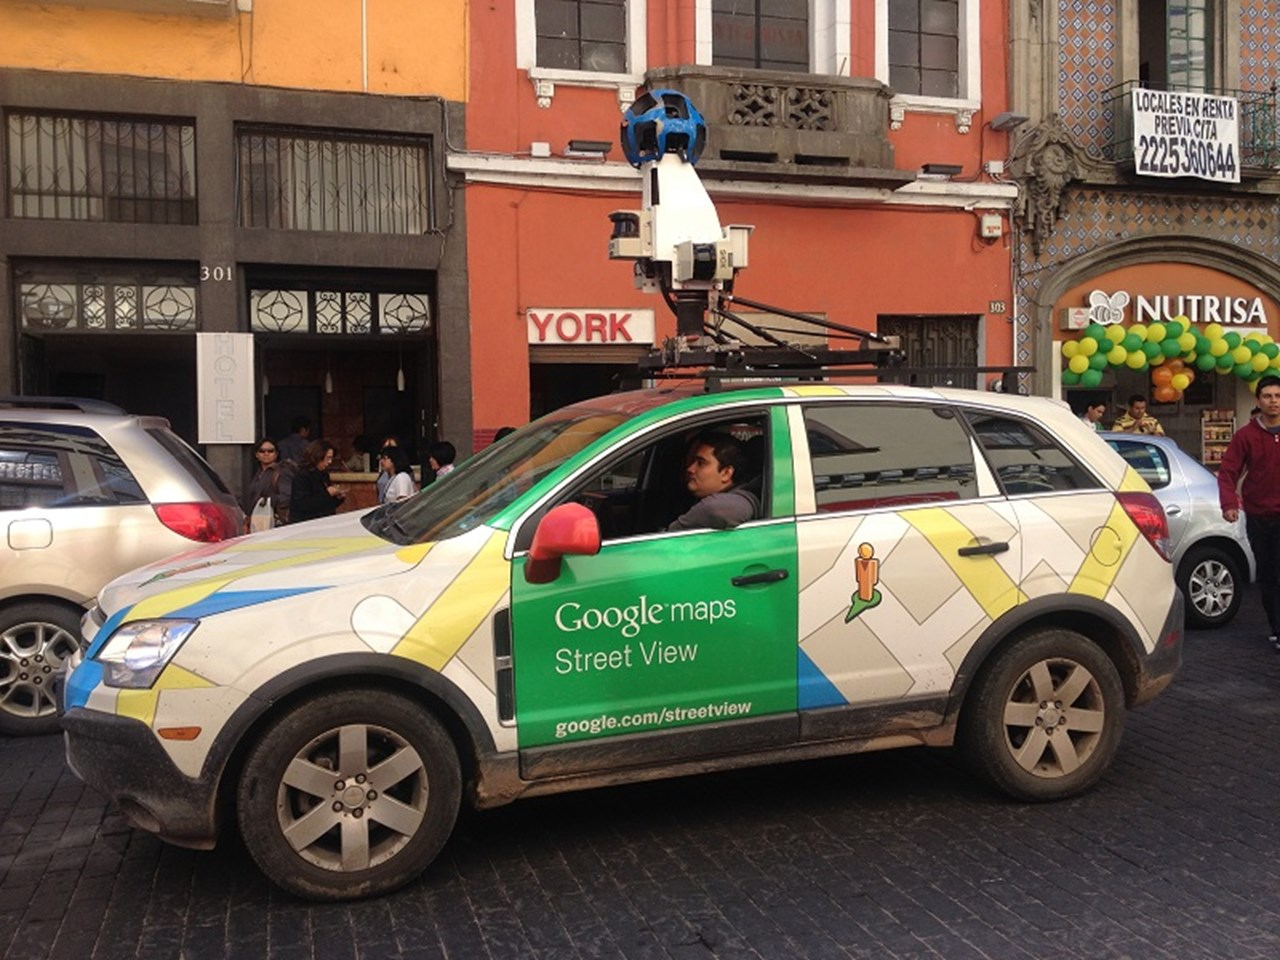 India rejects 'Google Street View' proposal due to security reasons